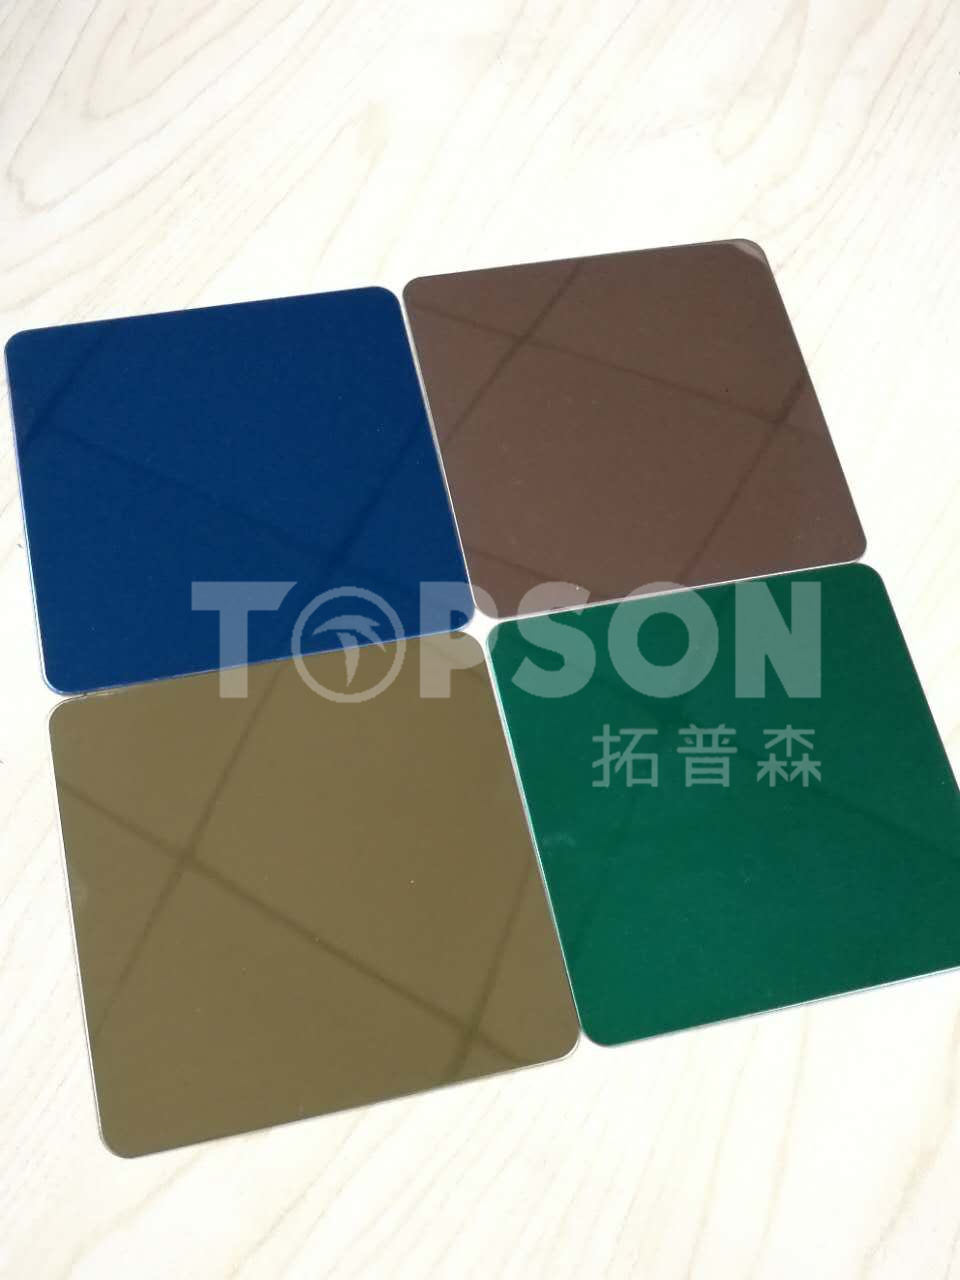 Topson Stainless Steel Sheet Embossed Linen Decorative Color for Home Decor